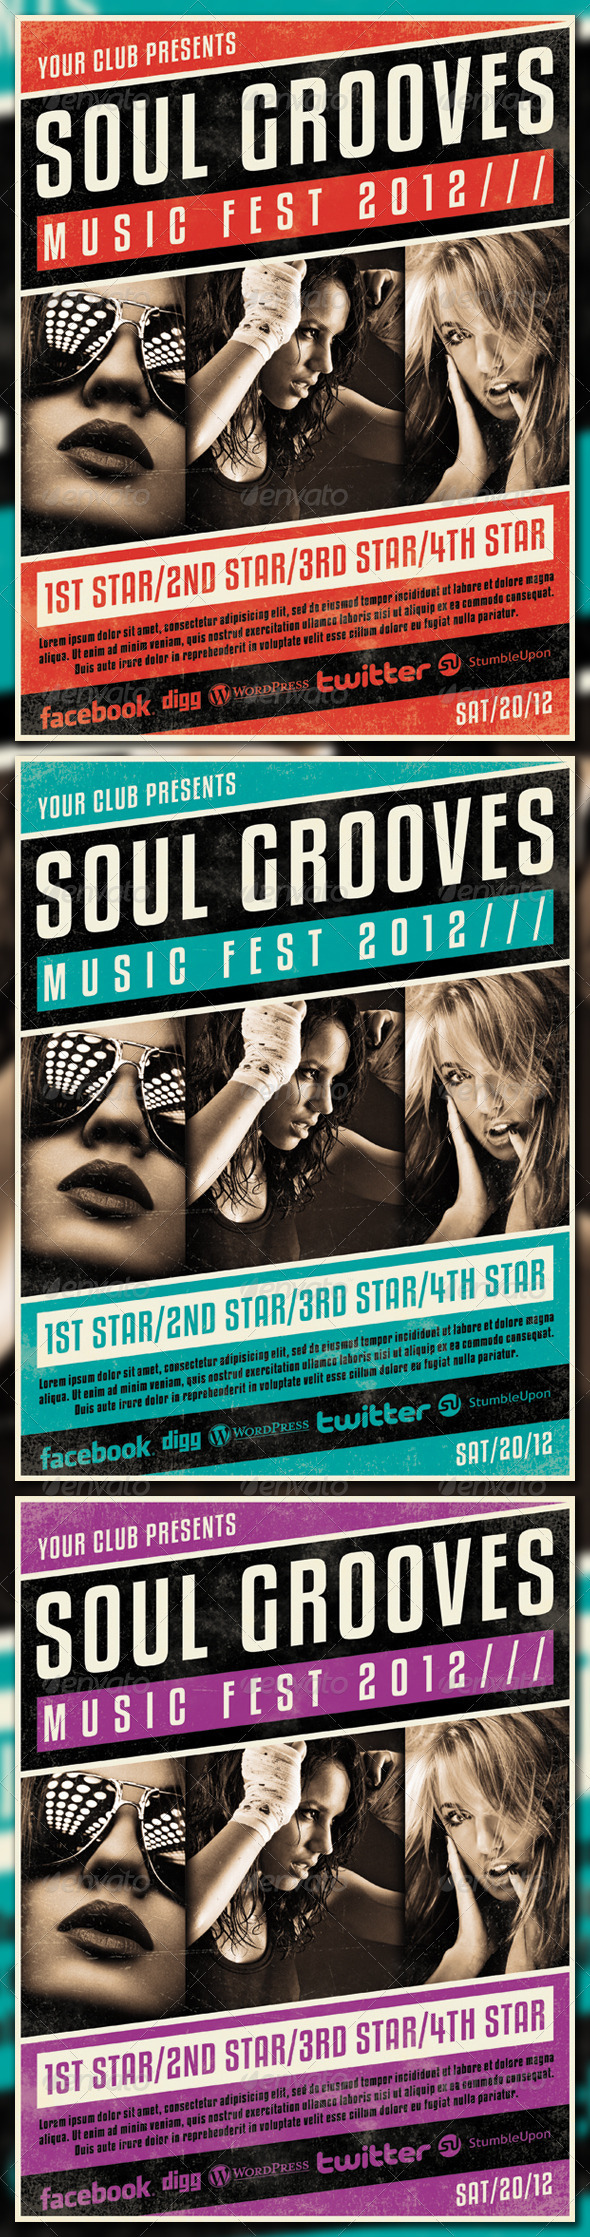 SOUL GROOVES - Concerts Events